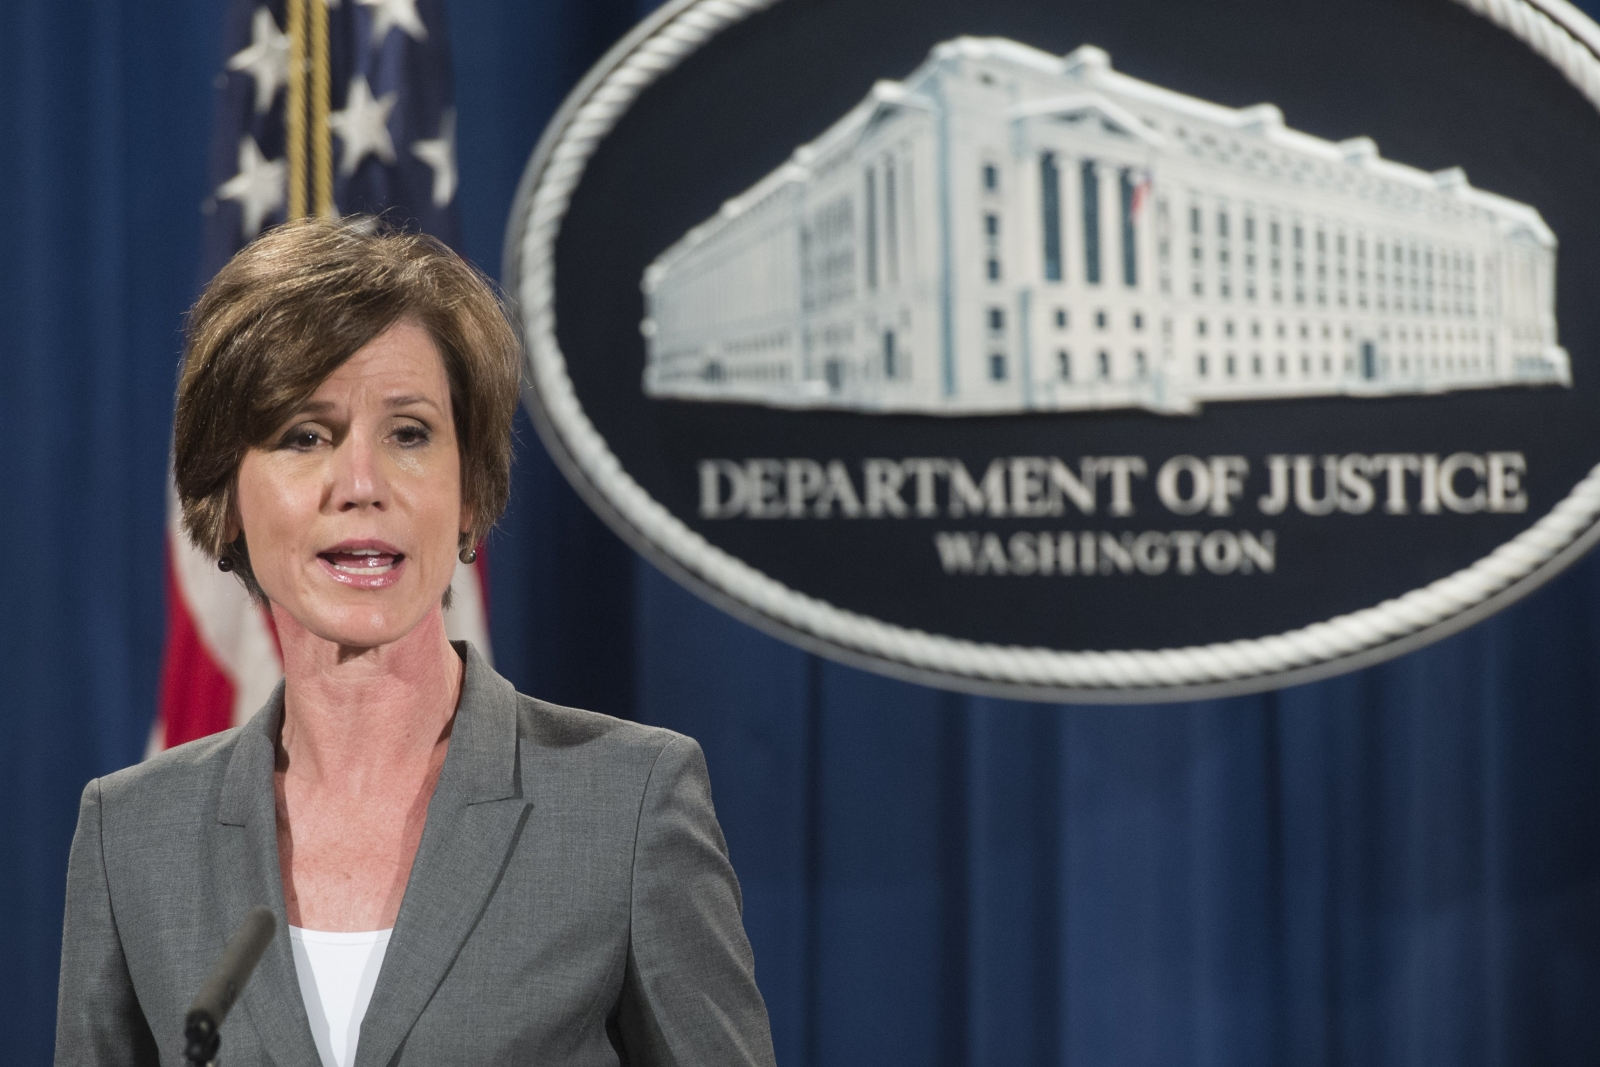 Acting Attorney General Sally Yates